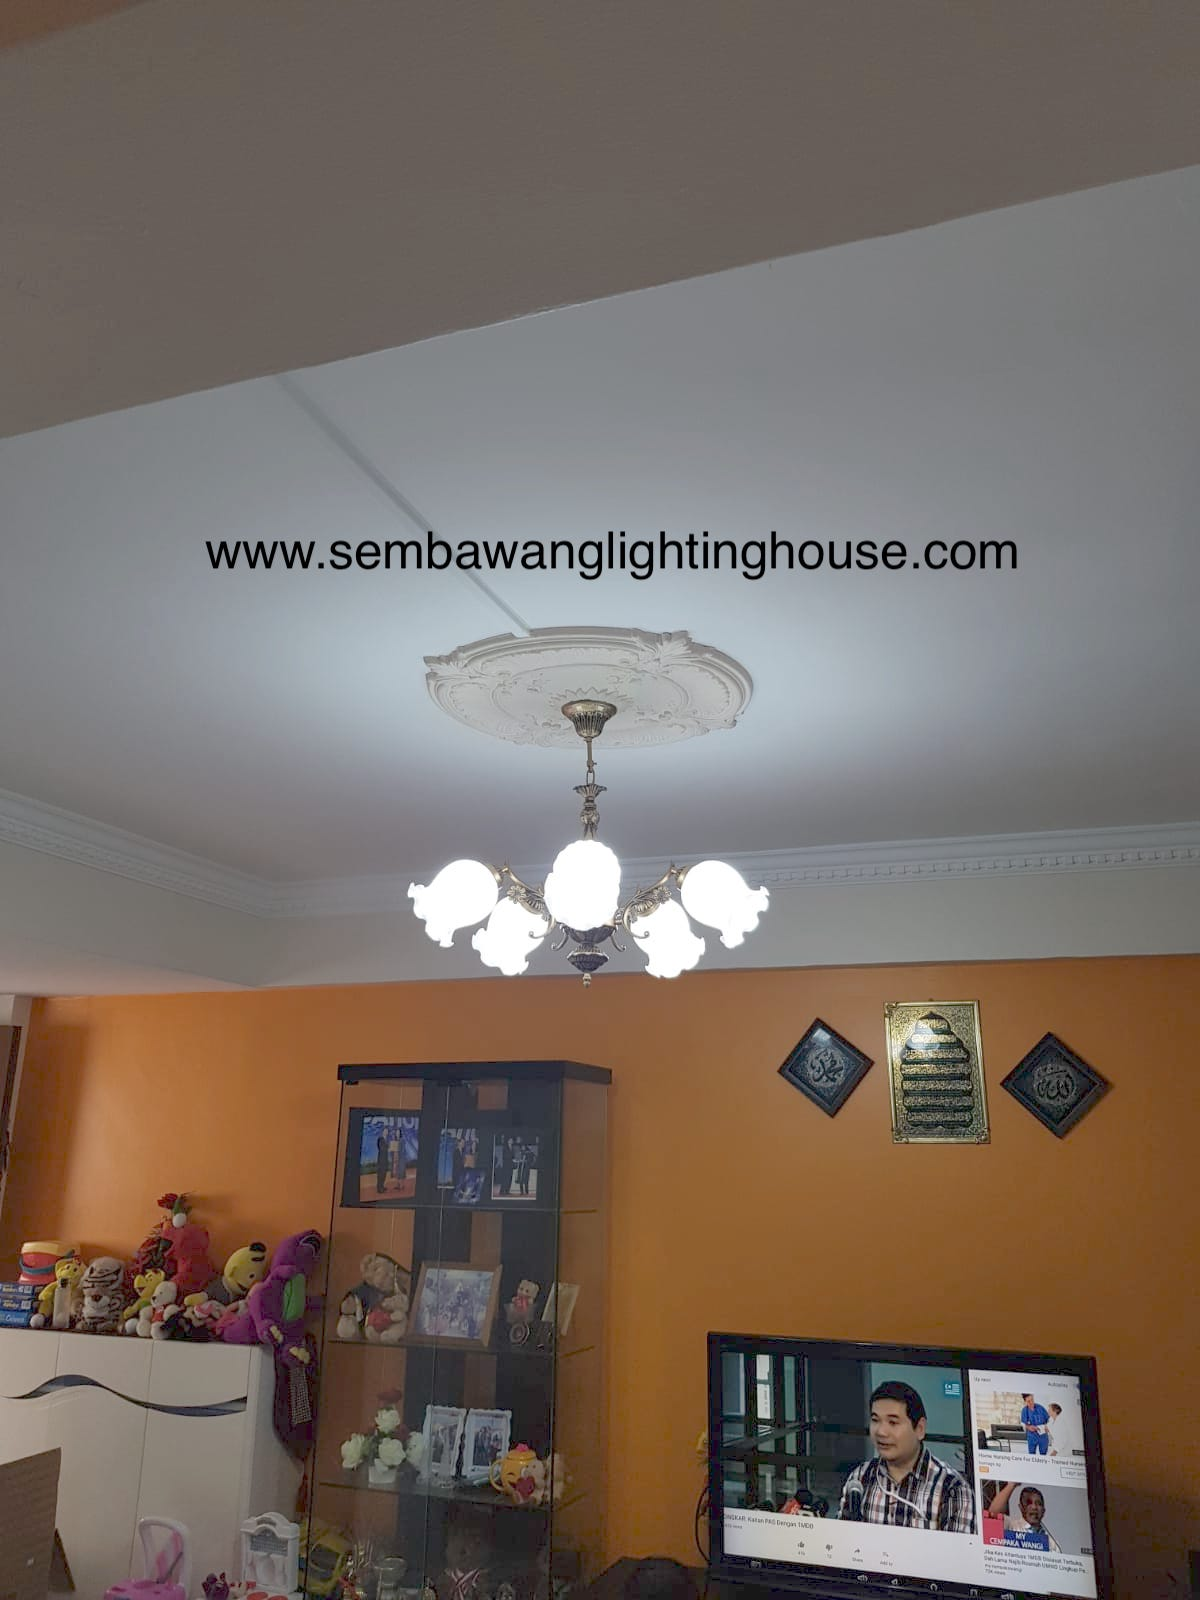 13-led-antique-hanging-lamp-in-living-room-hdb-sembawang-lighting-house.jpg